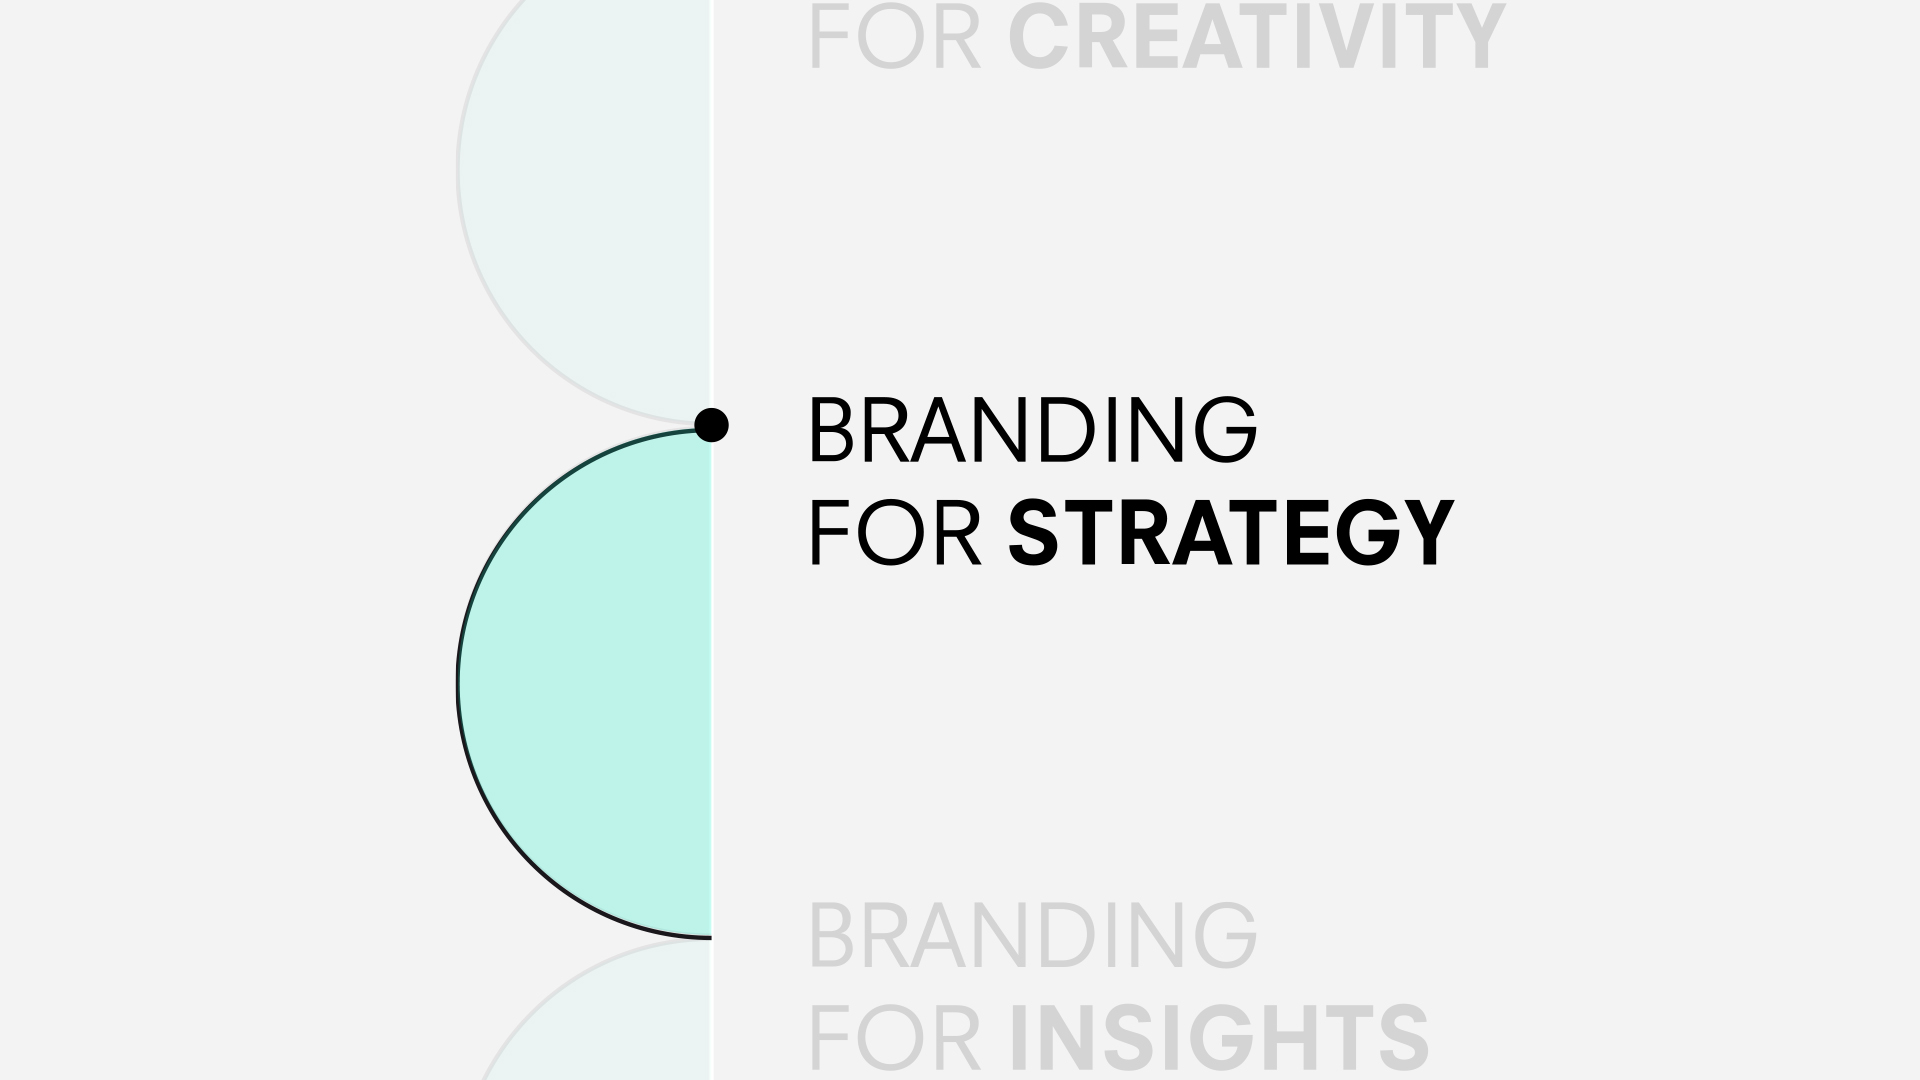 Branding for strategy